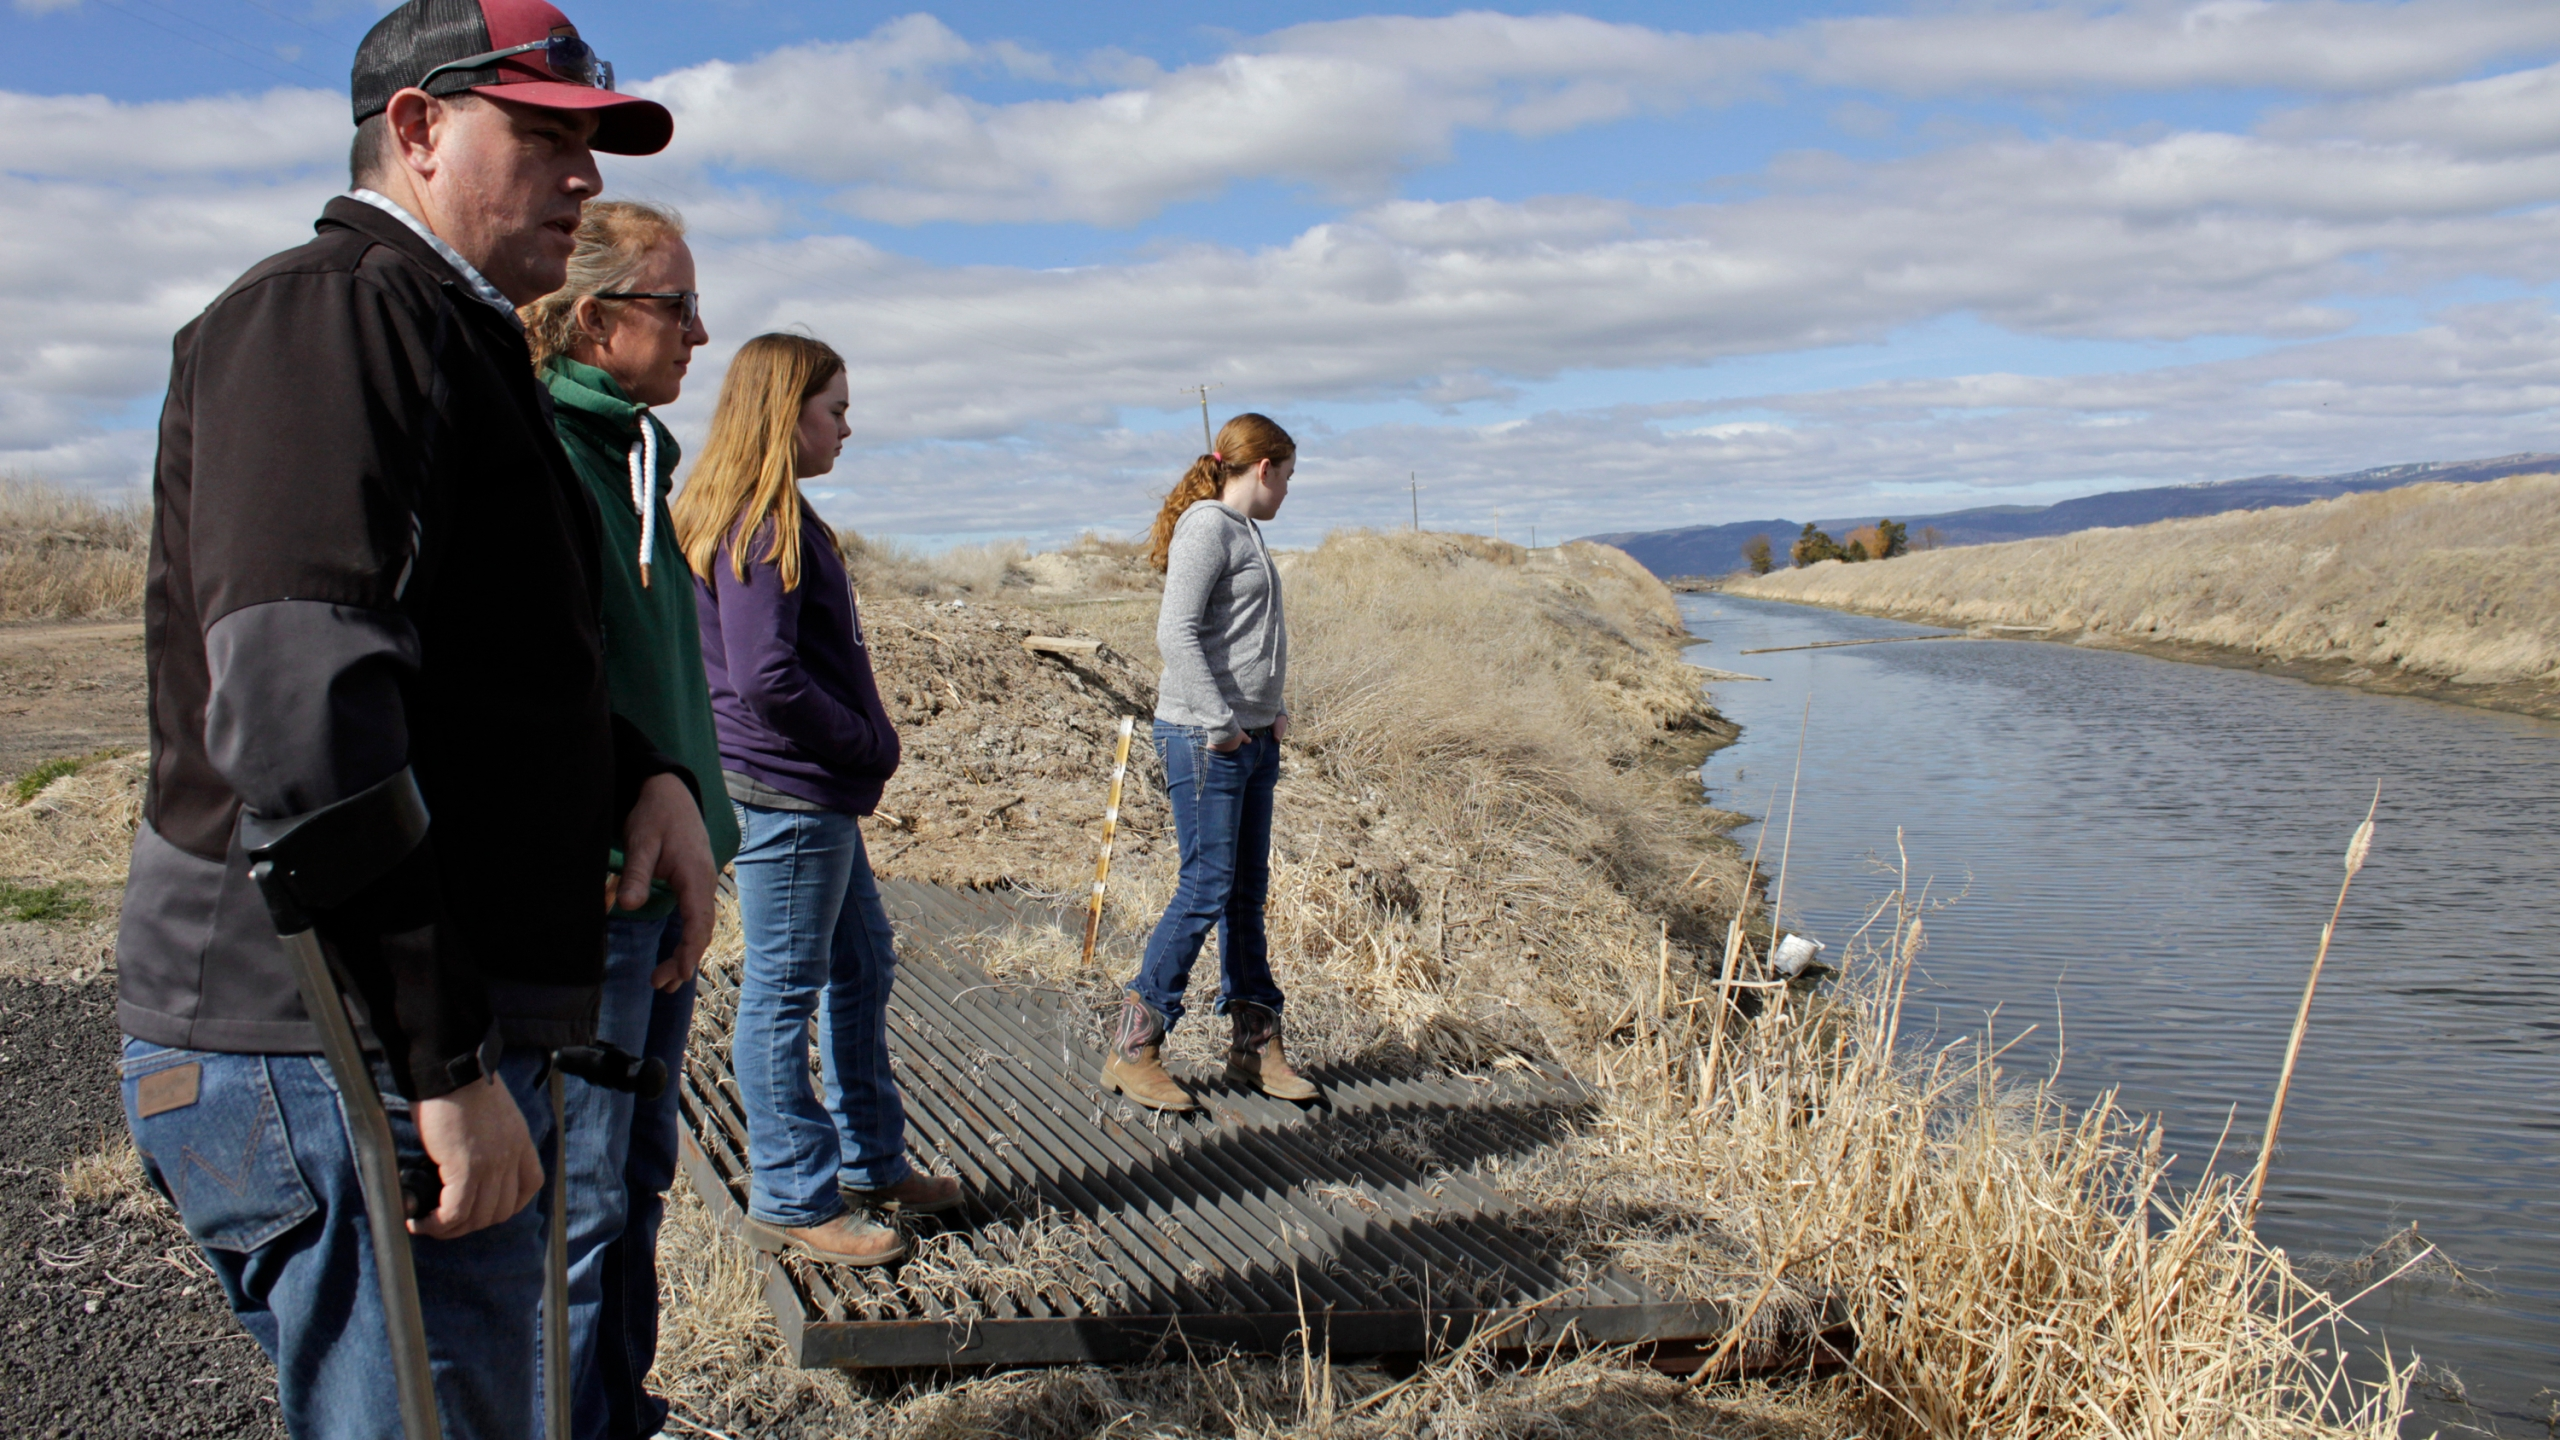 In this March 2, 2020, file photo, farmer Ben DuVal with his wife, Erika, and their daughters, Hannah, third from left, and Helena, fourth from left, stand near a canal for collecting run-off water near their property in Tulelake, Calif. (AP Photo/Gillian Flaccus, File)